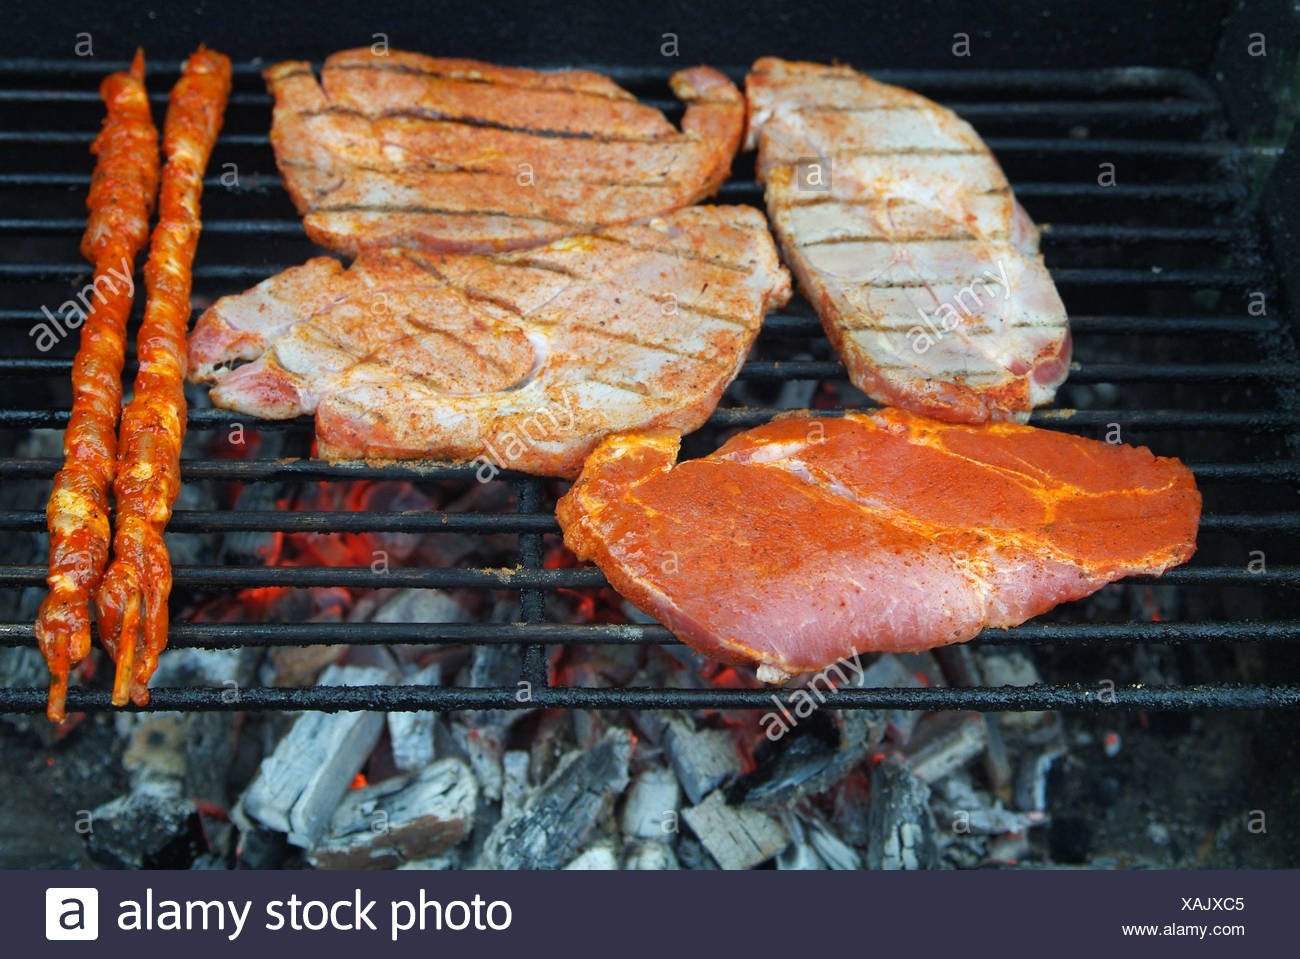 Coal Grill Barbecue Barbeque Charcoal Meat Food Aliment Kitchen Cuisine Dainty Stock Photo Alamy